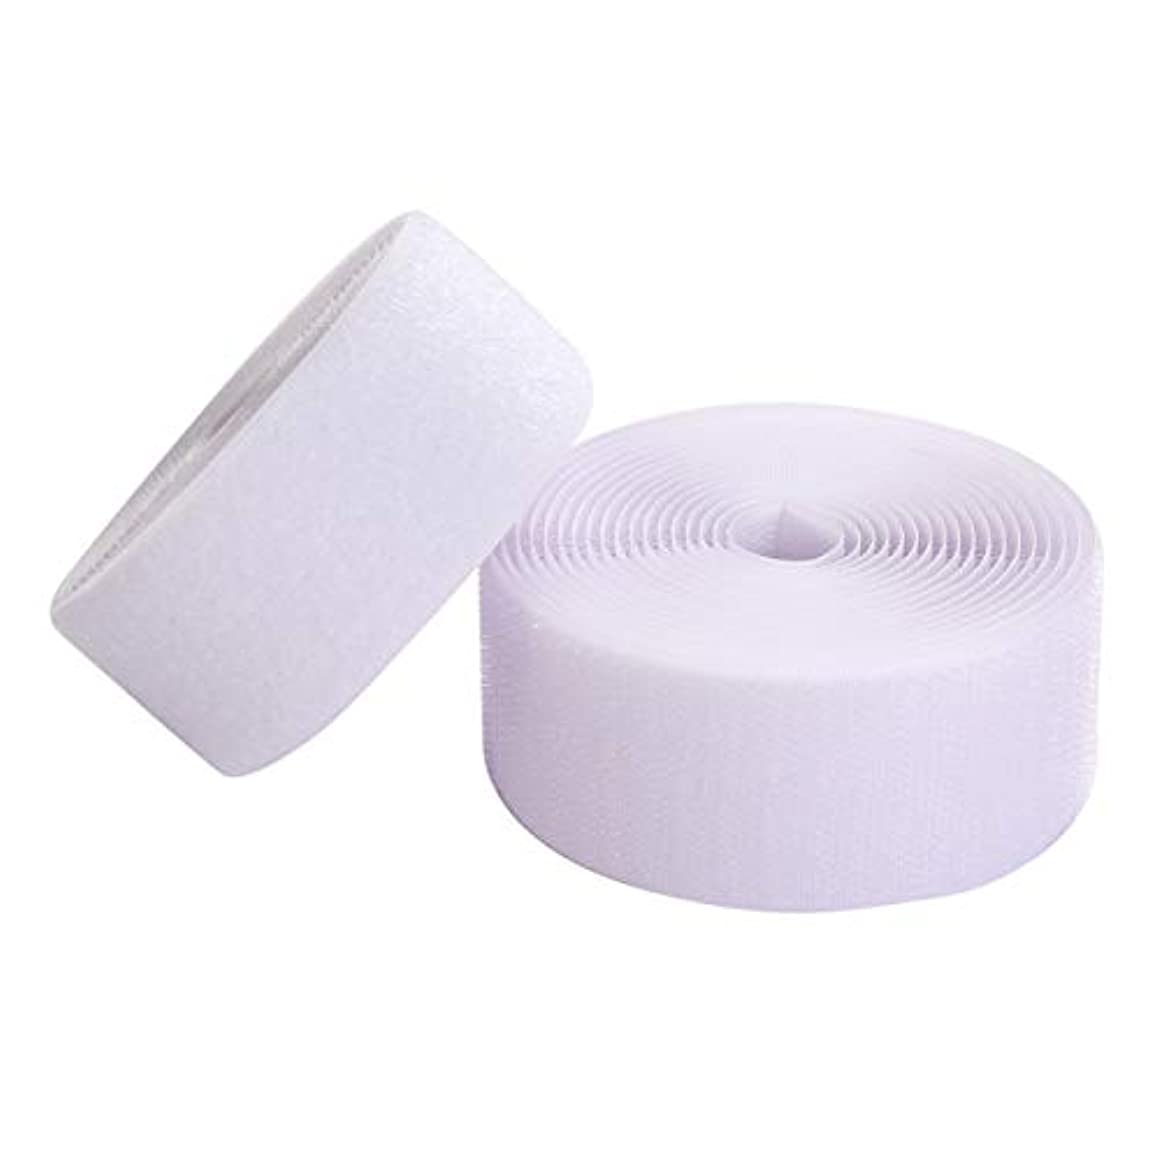 Sew on Hook and Loop Style 2 Inch Non-Adhesive Back Nylon Strips Fabric Fastener Non-Adhesive Interlocking Tape White,5 Yard